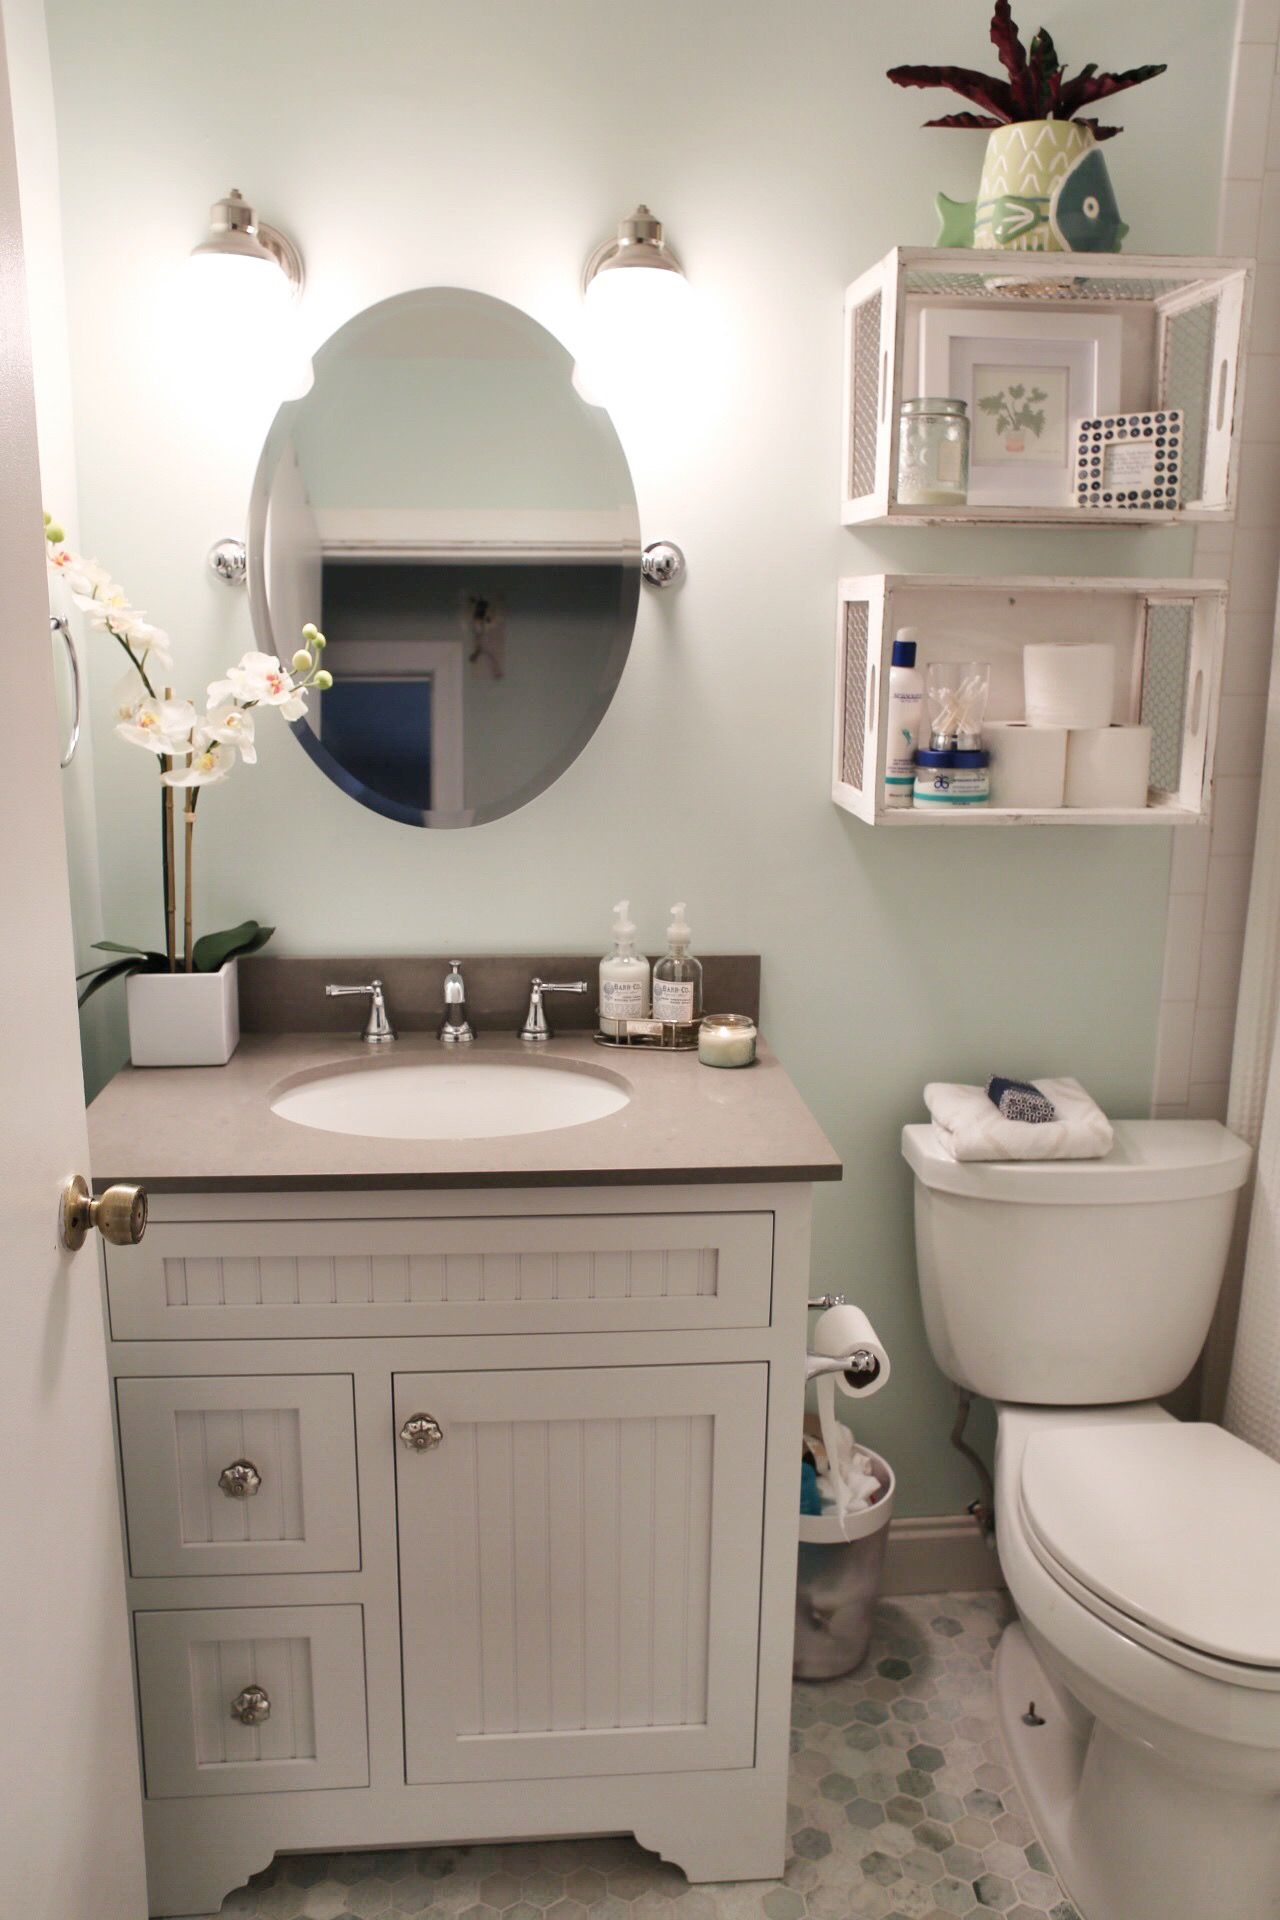 Photos Of Small Bathrooms Small Bathroom Renovation With Before And After Photos